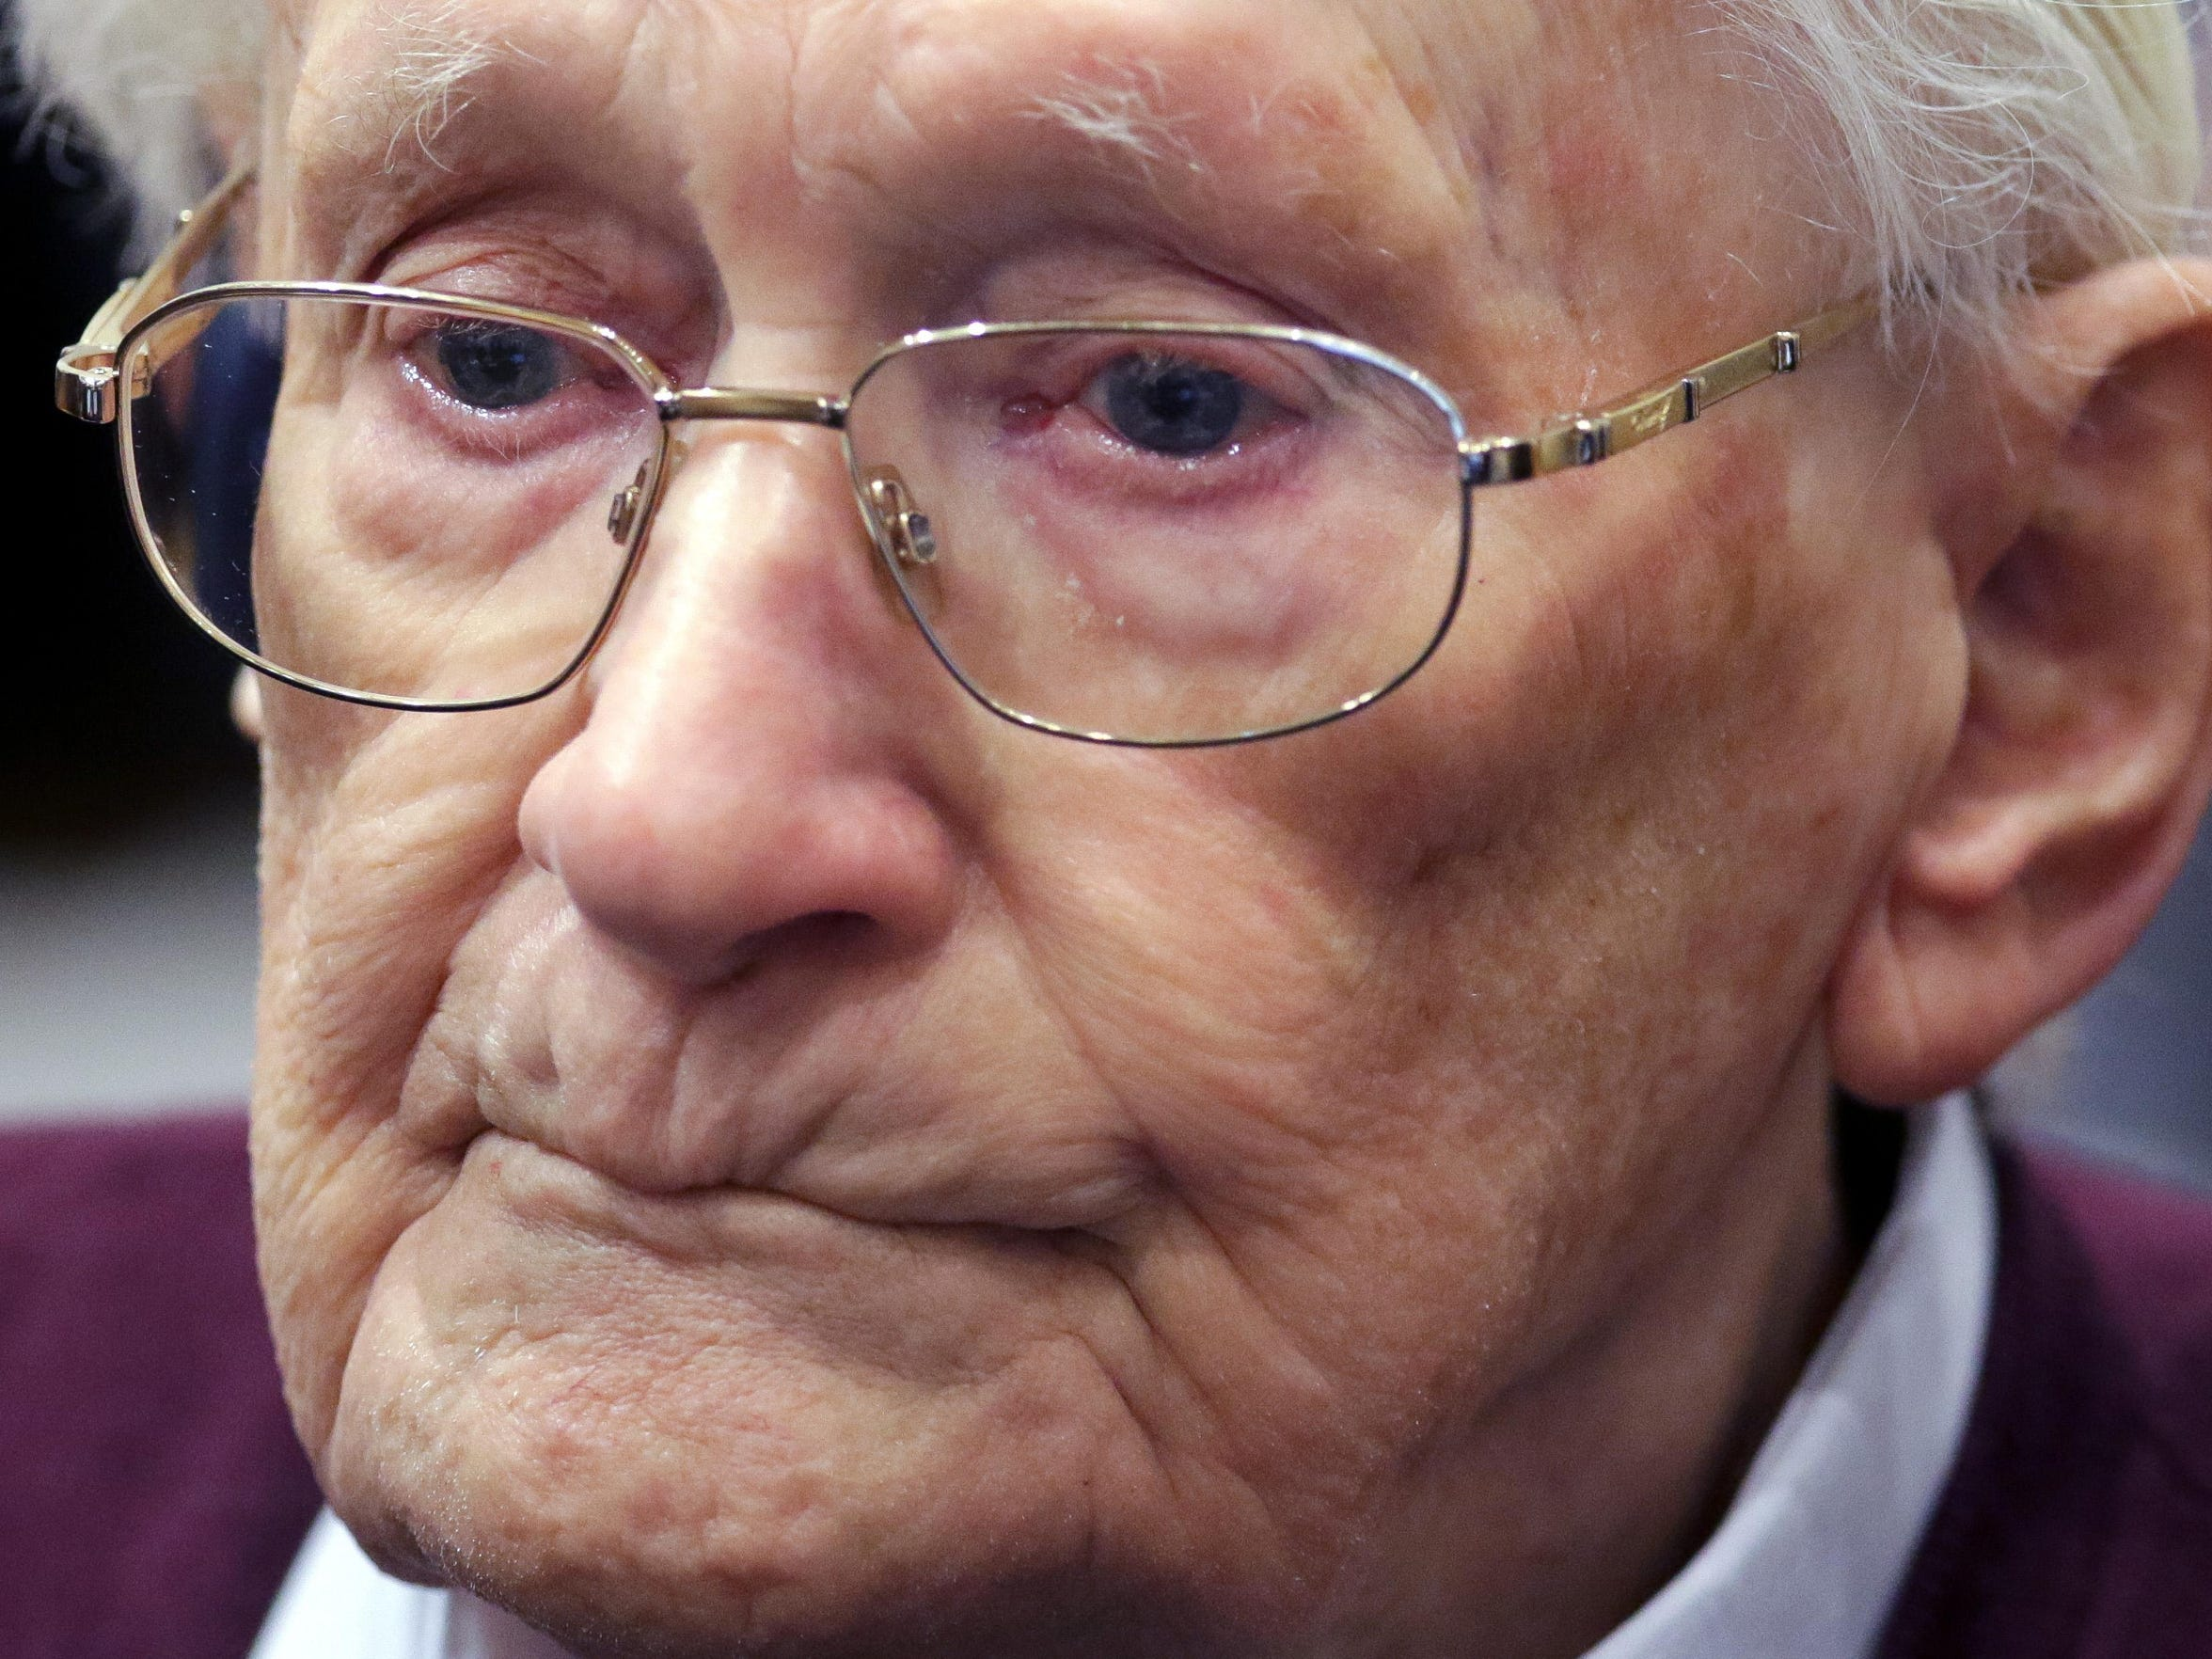 94-year-old former SS Sgt. Oskar Groening listens to the verdict of his trial Wednesday, July 15, 2015, at a court in Lueneburg, northern Germany. Groening, who served at the Auschwitz death camp was convicted on 300,000 counts of accessory to murder and given a four-year sentence. (Axel Heimken/Pool Photo via AP)